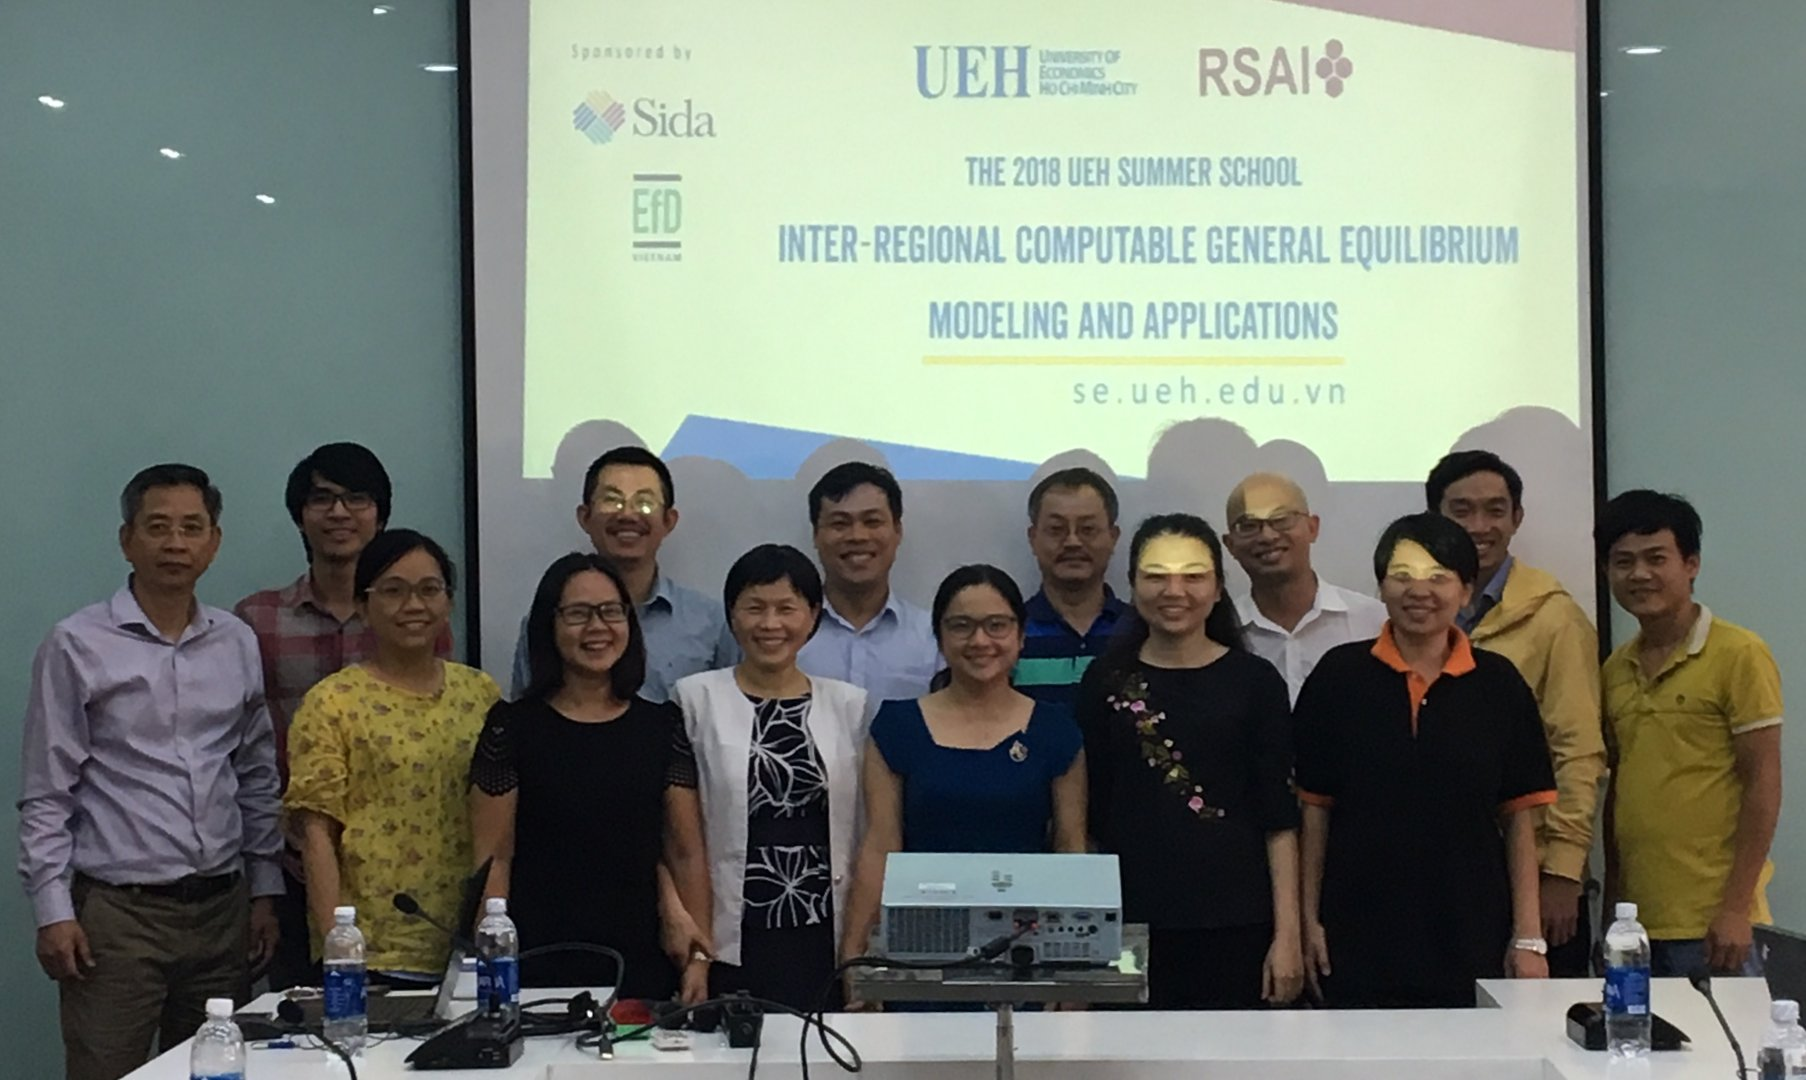 August 2018 Vietnam Regional CGE course held at University of Economics, Ho Chi Minh City